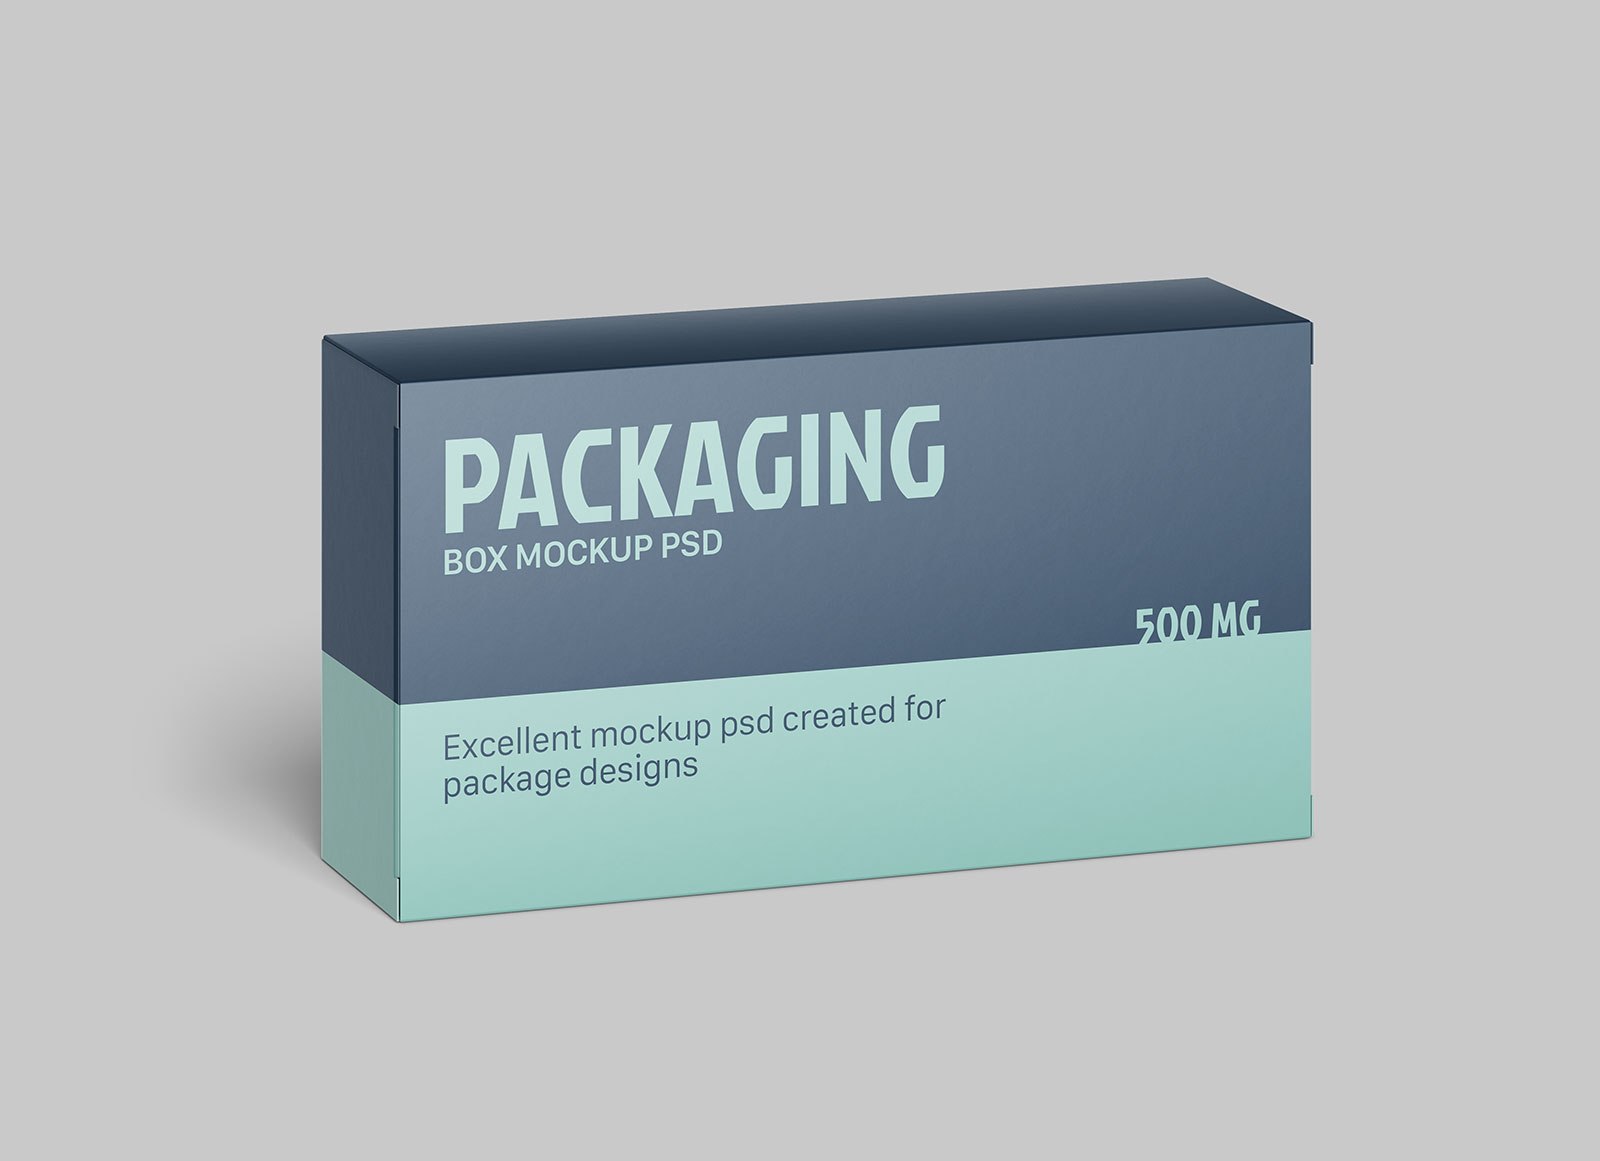 Free-Rectangle-Box-Packaging-Mockup-PSD-5